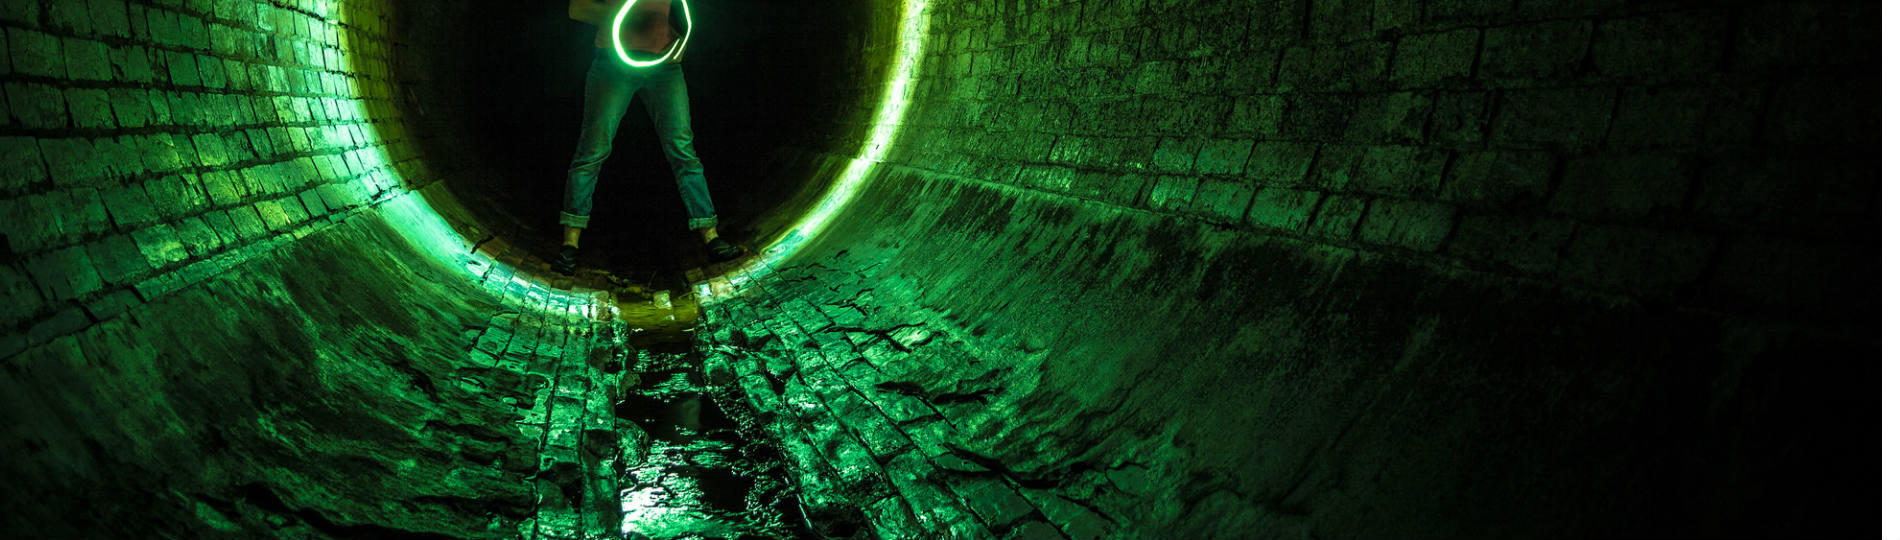 A person holding a glowing green ring illuminates a stone tunnel.